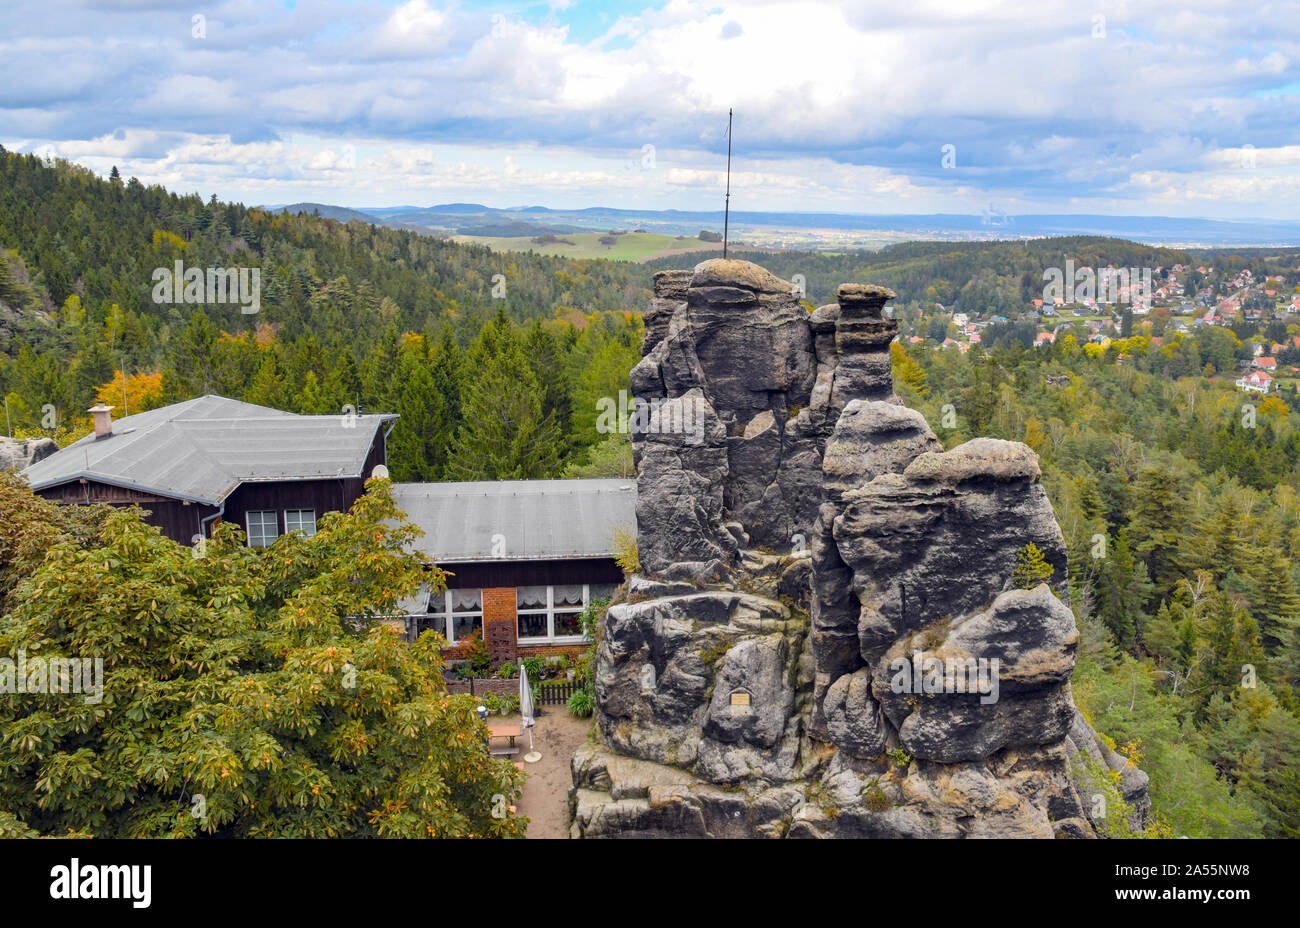 Jonsdorf, Germany. 09th Oct, 2019. The Nonnenfelsen mountain inn in the health resort of Jonsdorf in the Zittau Mountains on the border with the Czech Republic and Poland. Credit: Patrick Pleul/dpa-Zentralbild/ZB/dpa/Alamy Live News Stock Photo